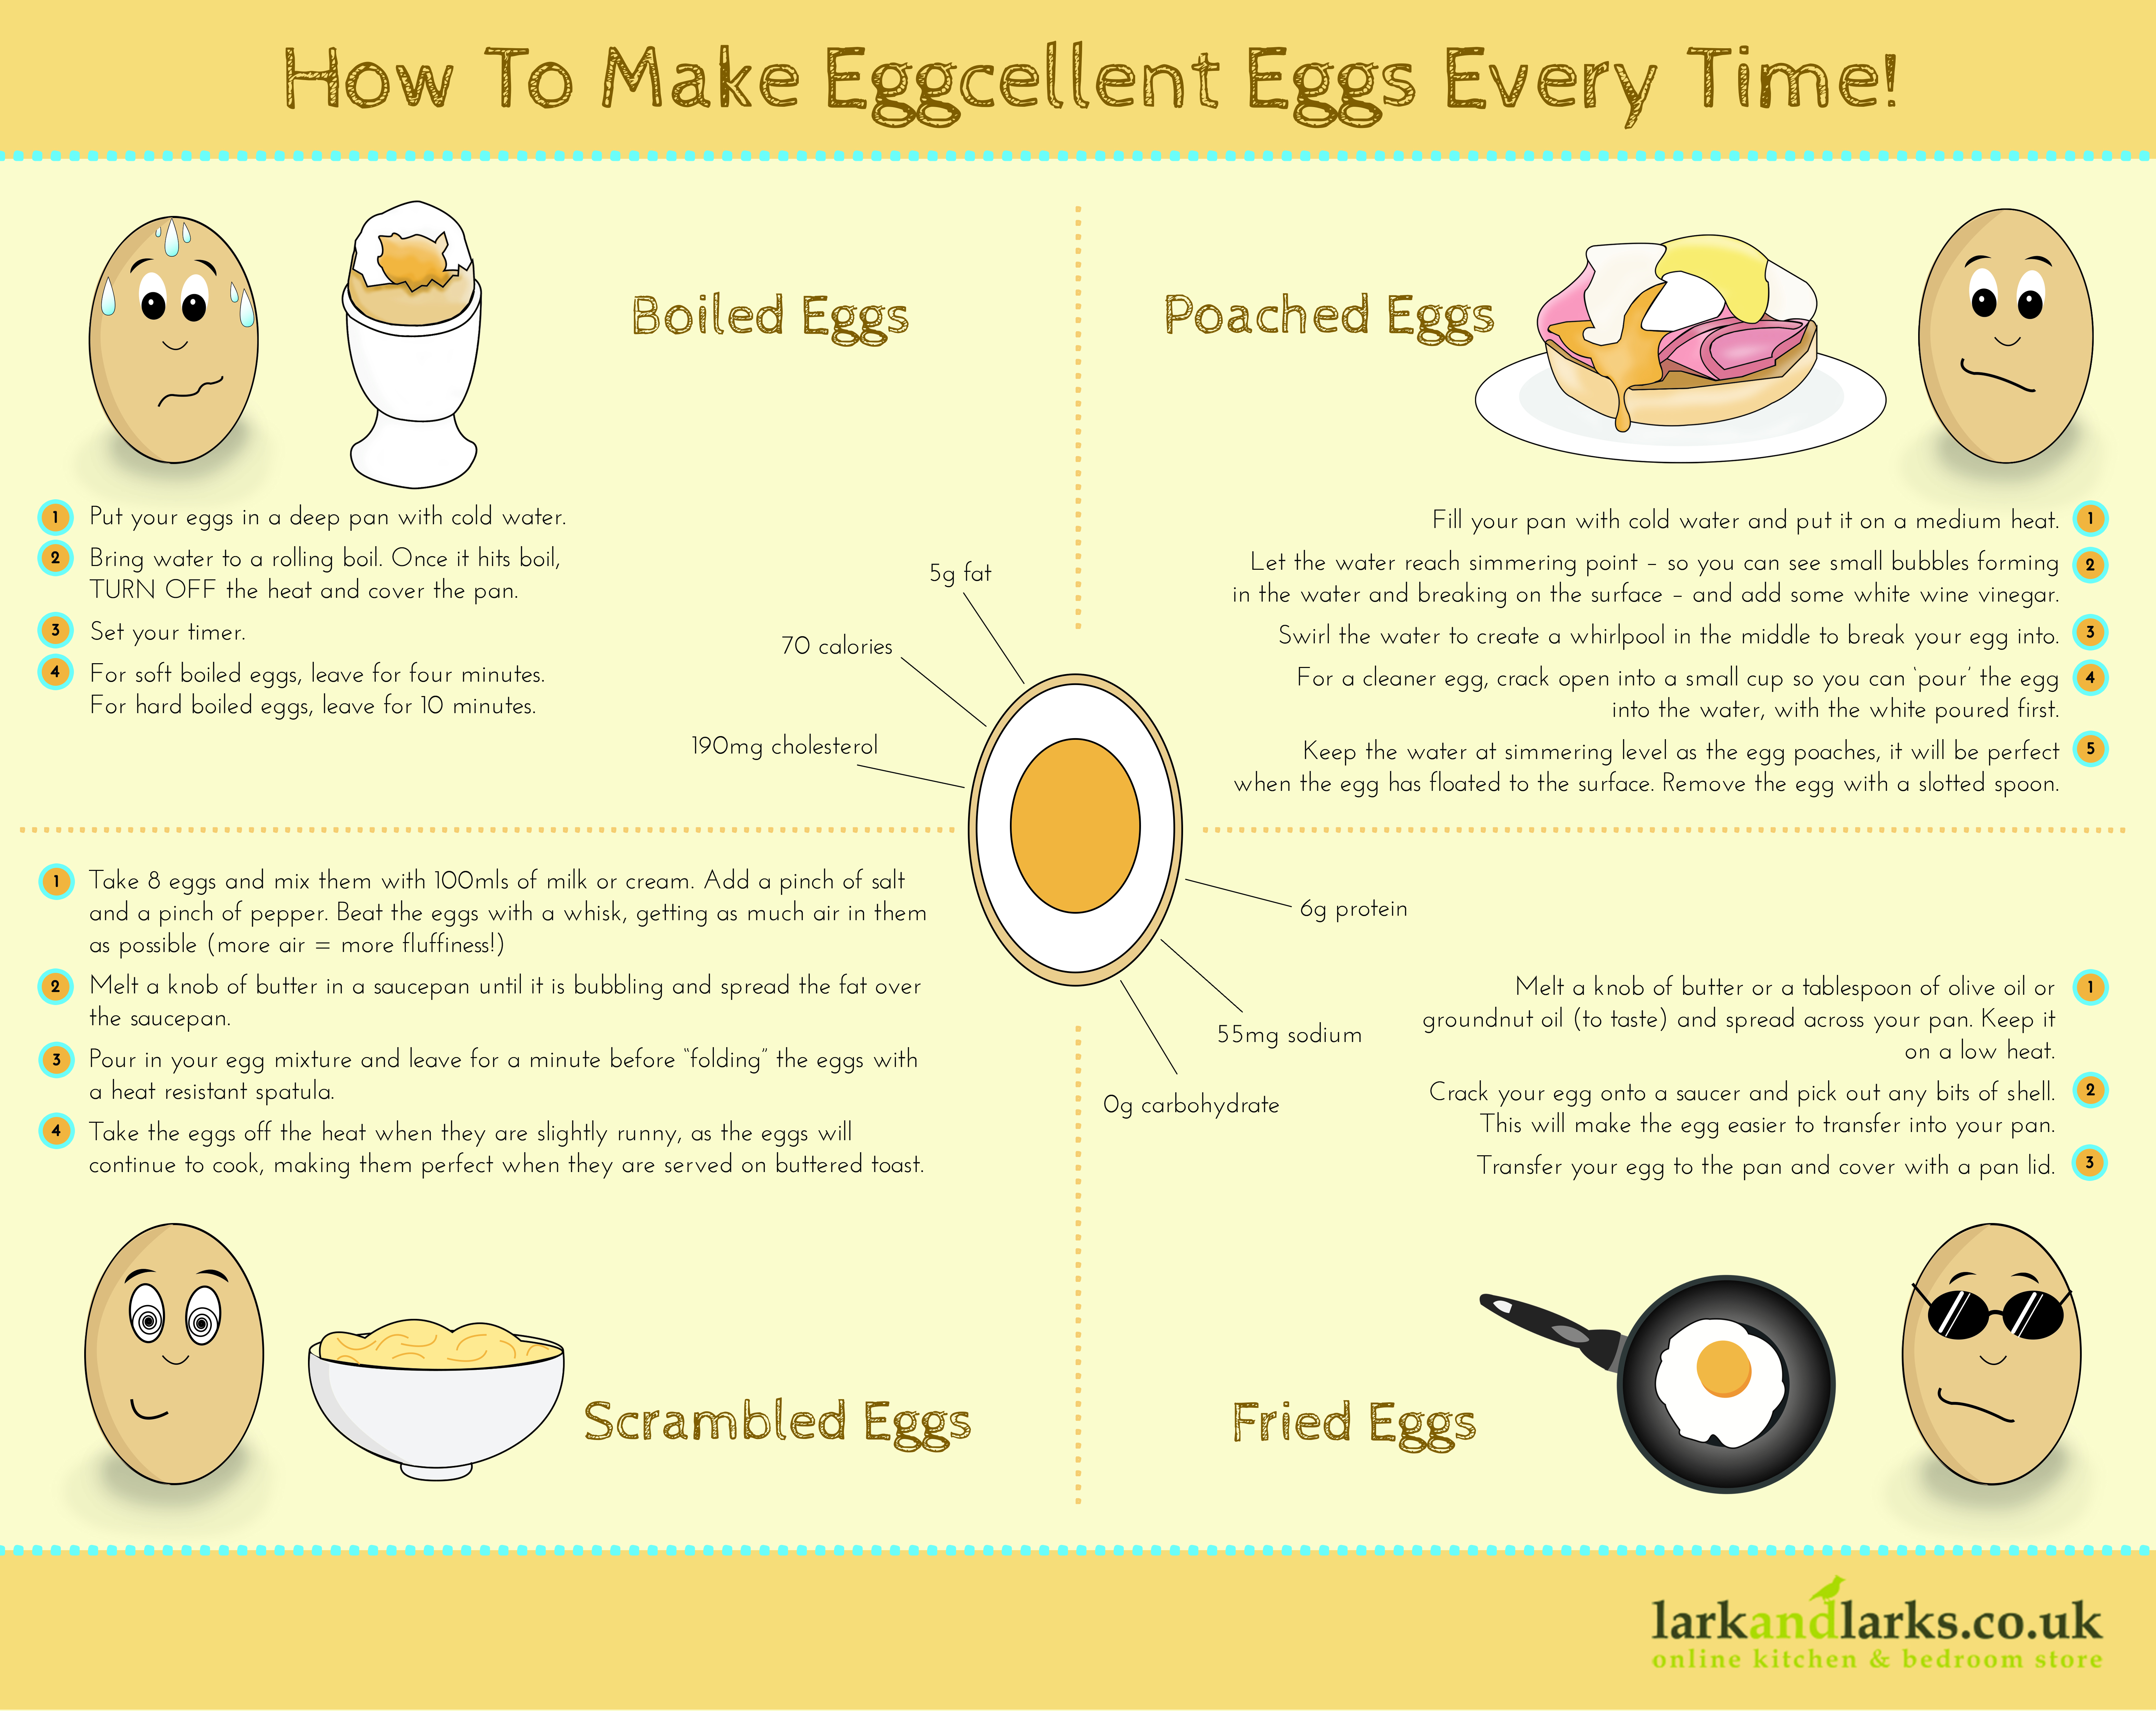 Lark and Larks Eggs Infographic